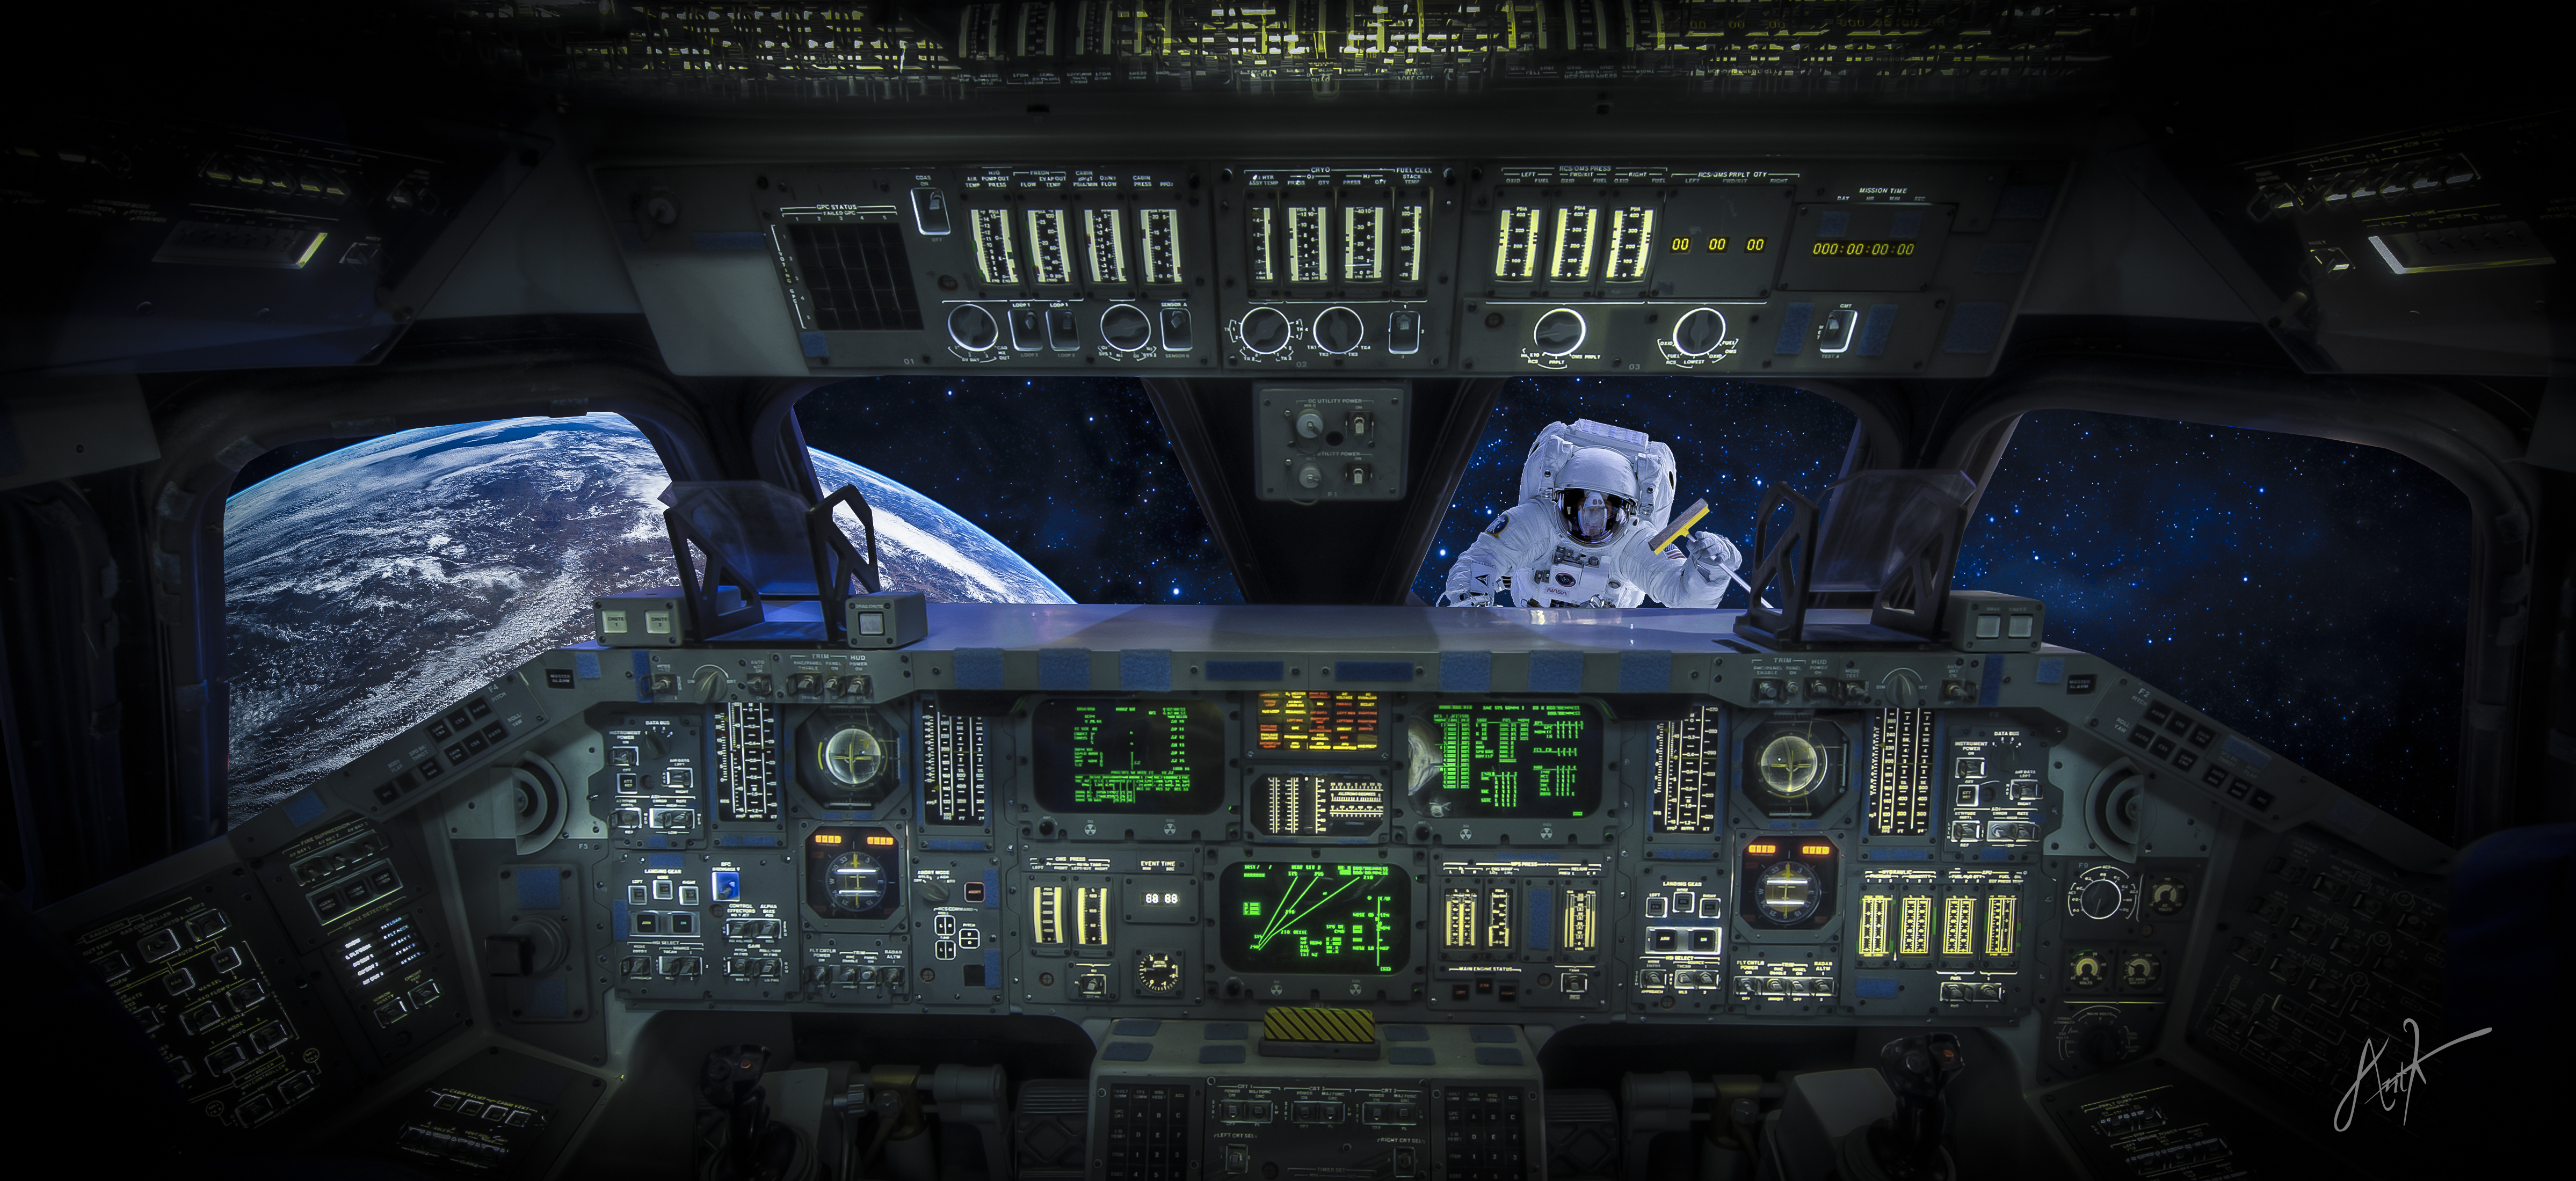 Space Shuttle Widescreen 15 July, - Spaceship Cockpit Wallpaper 4k , HD Wallpaper & Backgrounds